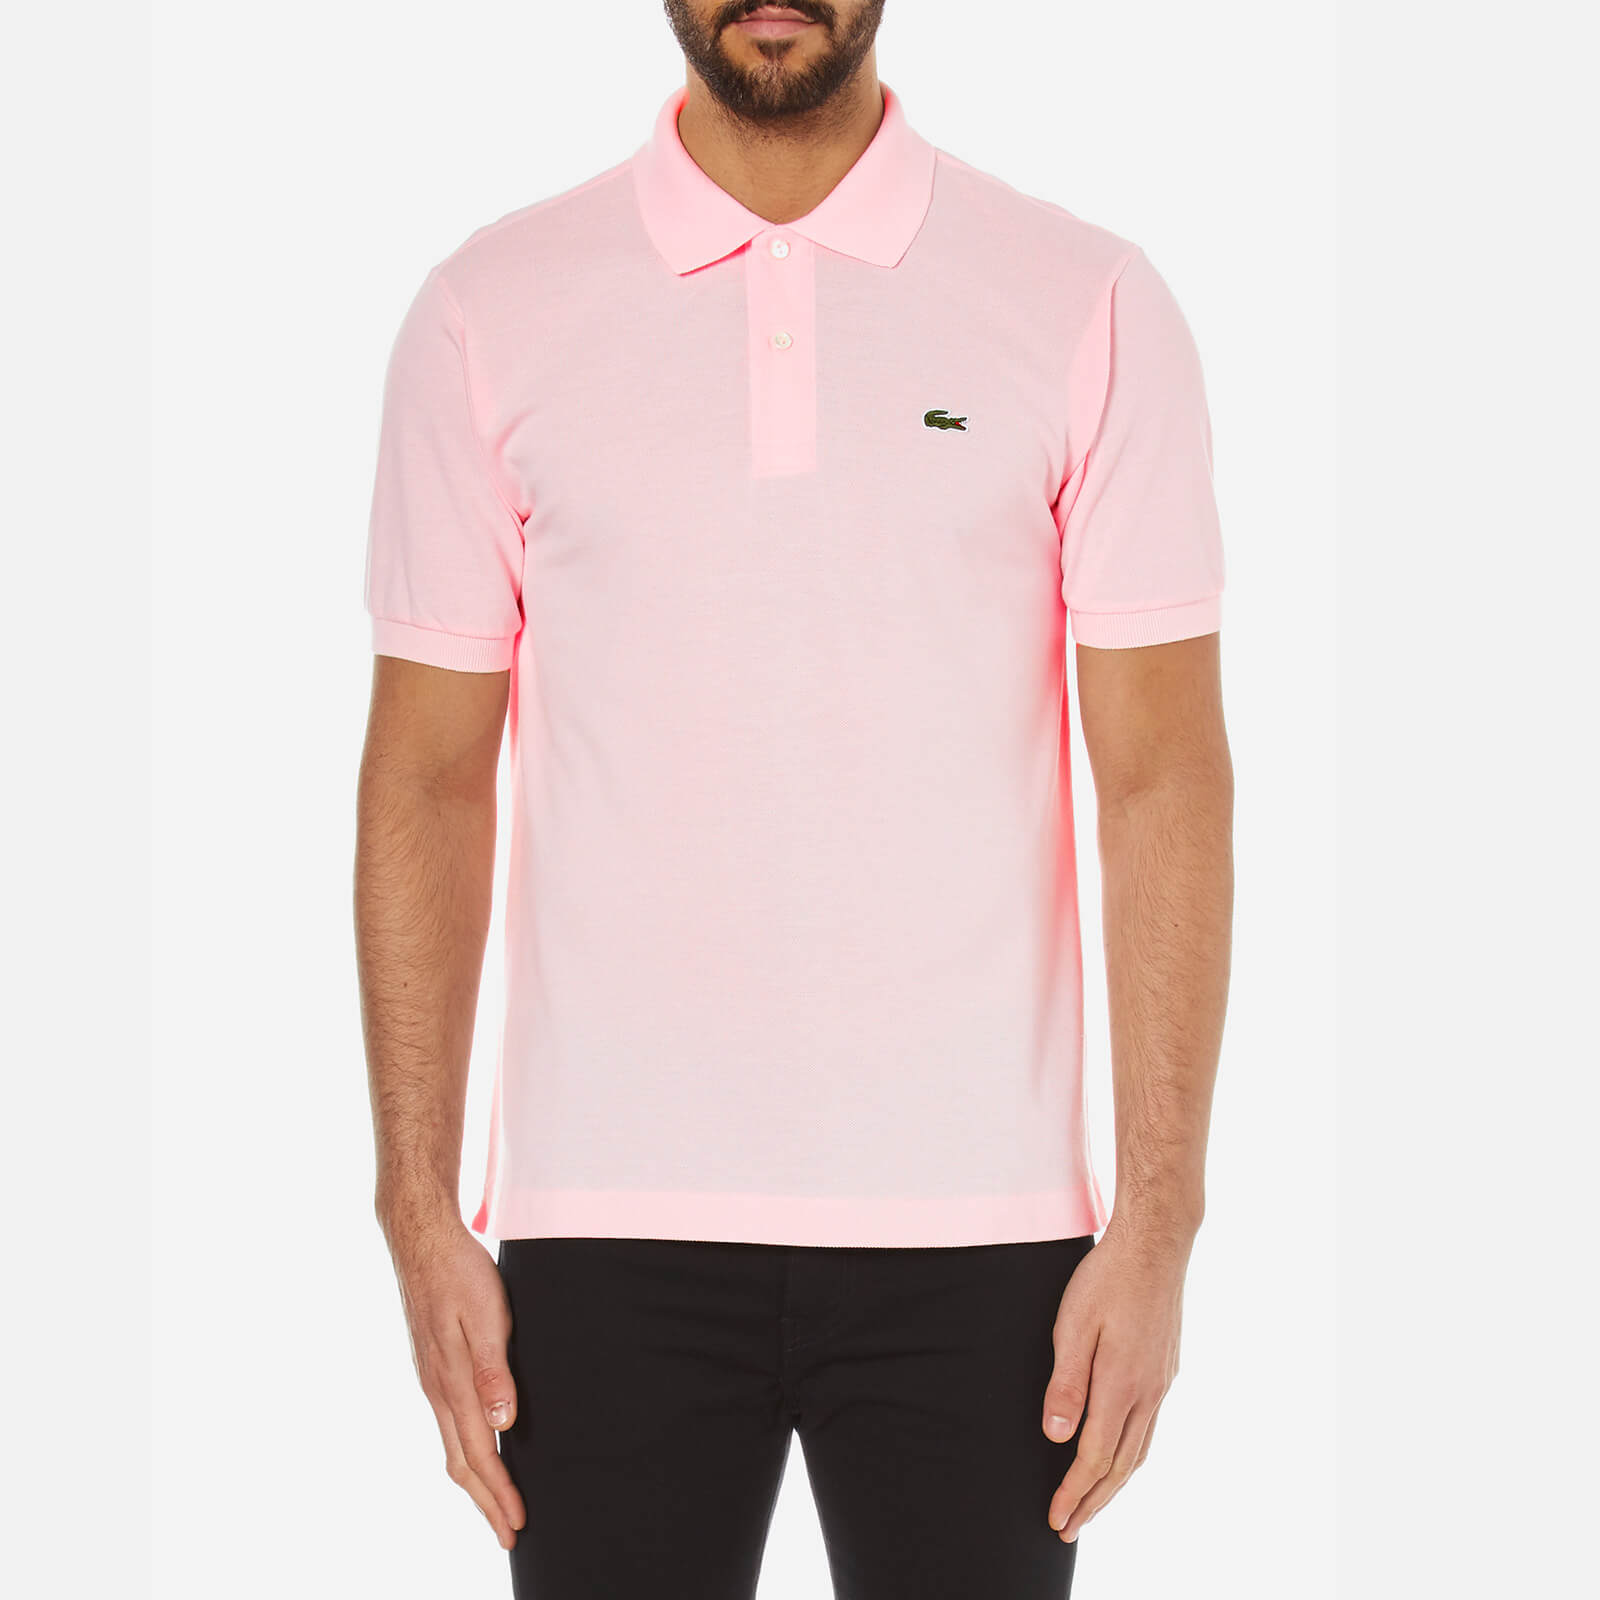 e1d74b27c4 Lacoste Men's Polo Shirt - Flamingo - Free UK Delivery over £50